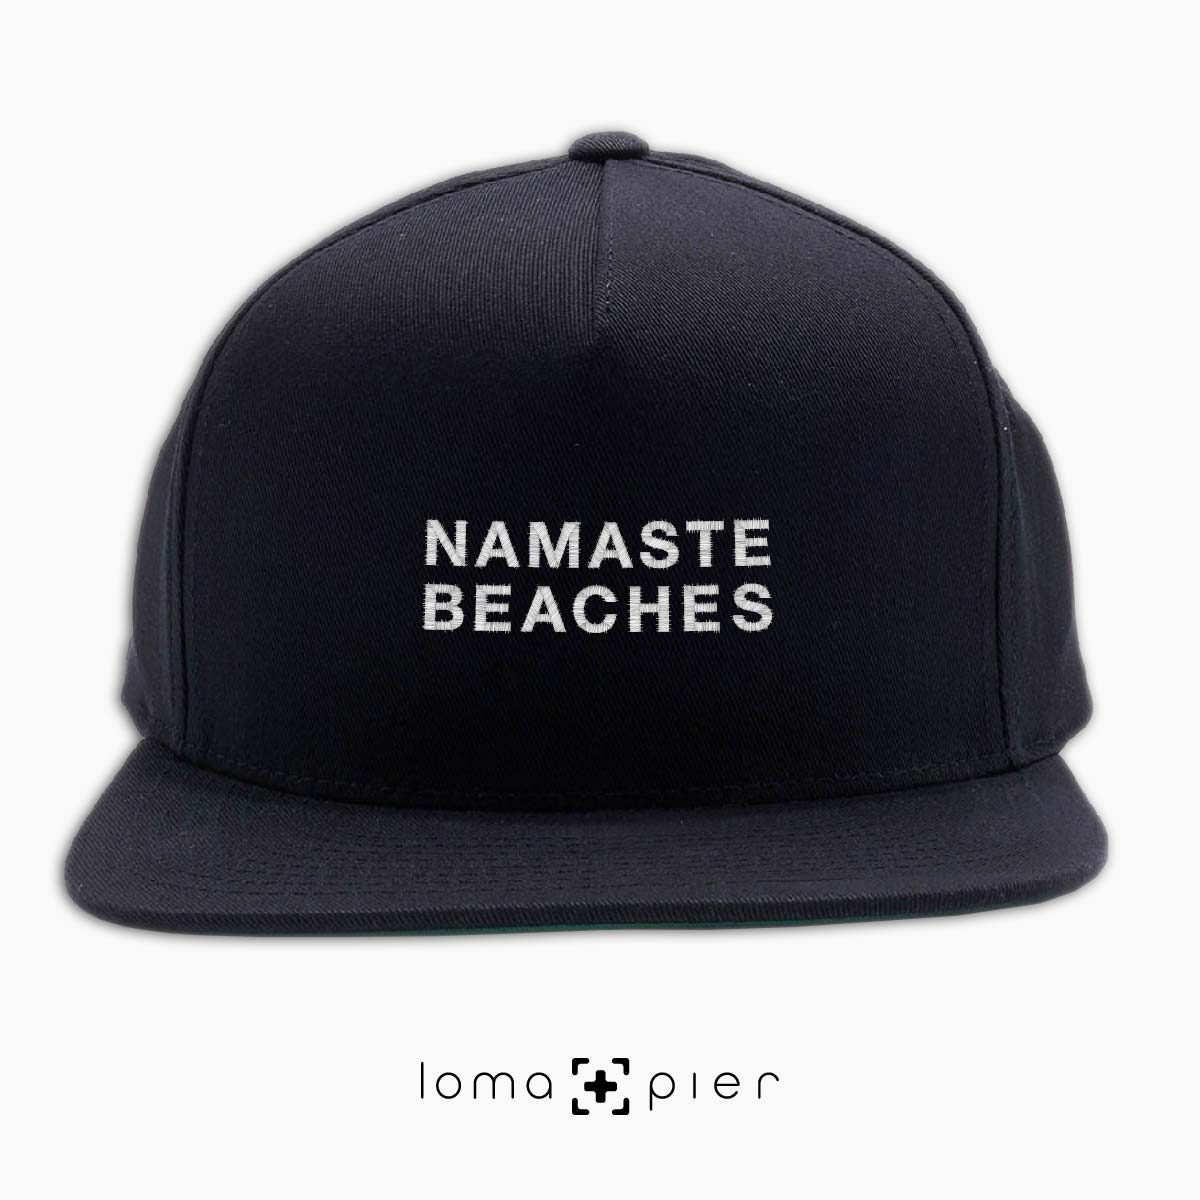 NAMASTE BEACHES hermosa beach yoga embroidered on a black classic snapback hat with white thread by loma+pier hat store